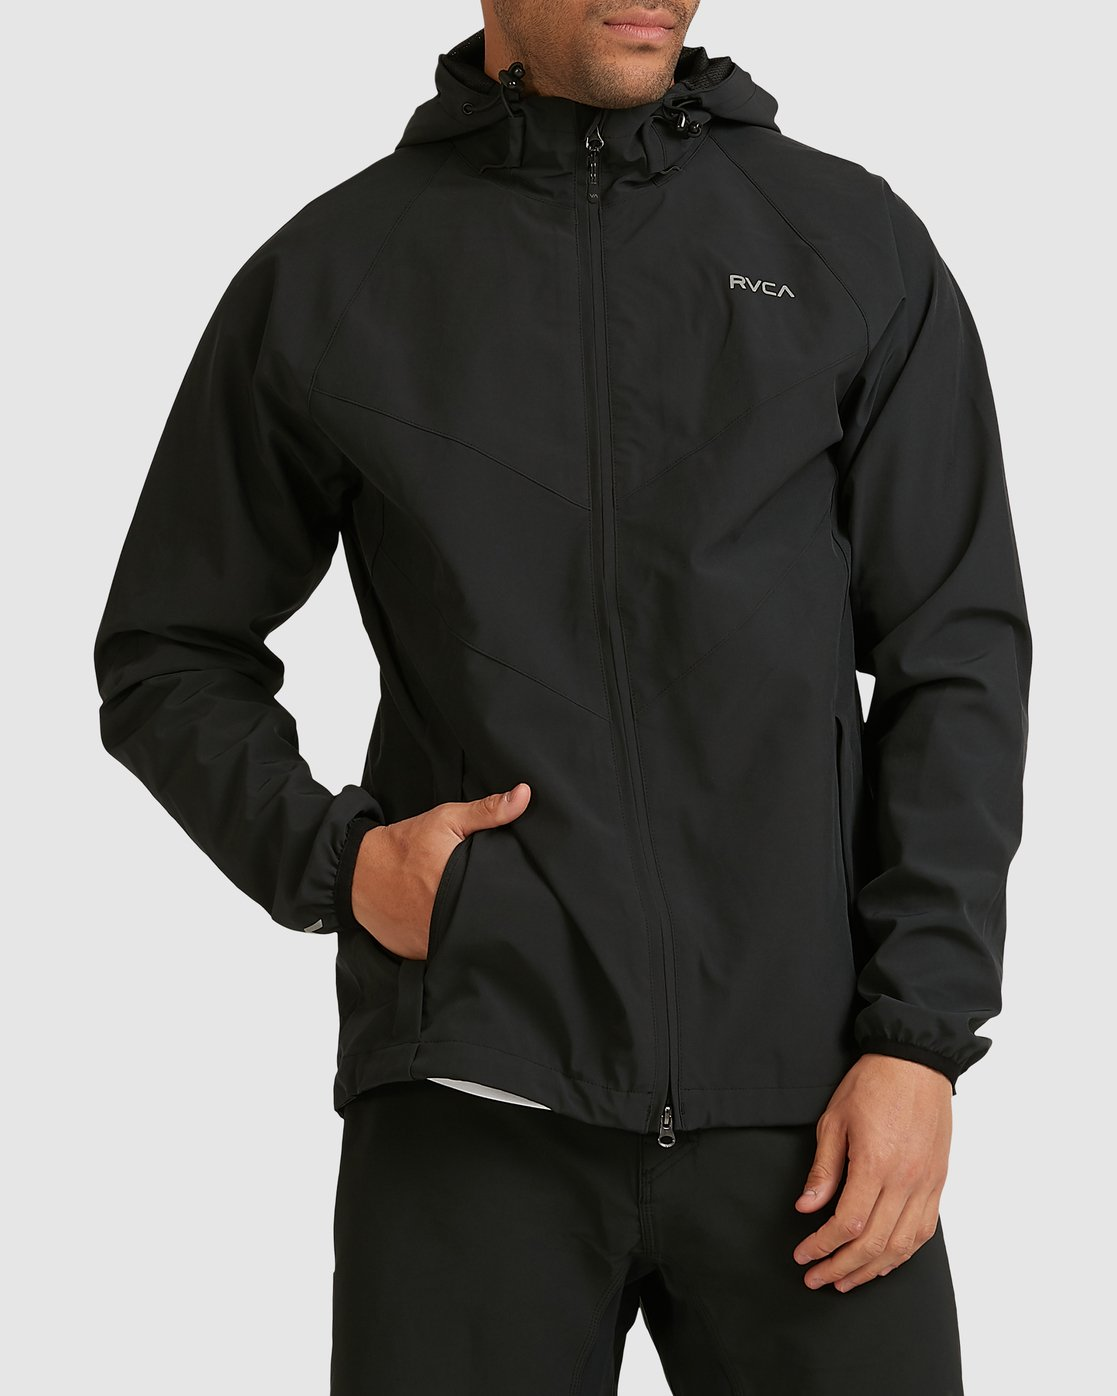 0 VA WINDBREAKER Black R183438 RVCA